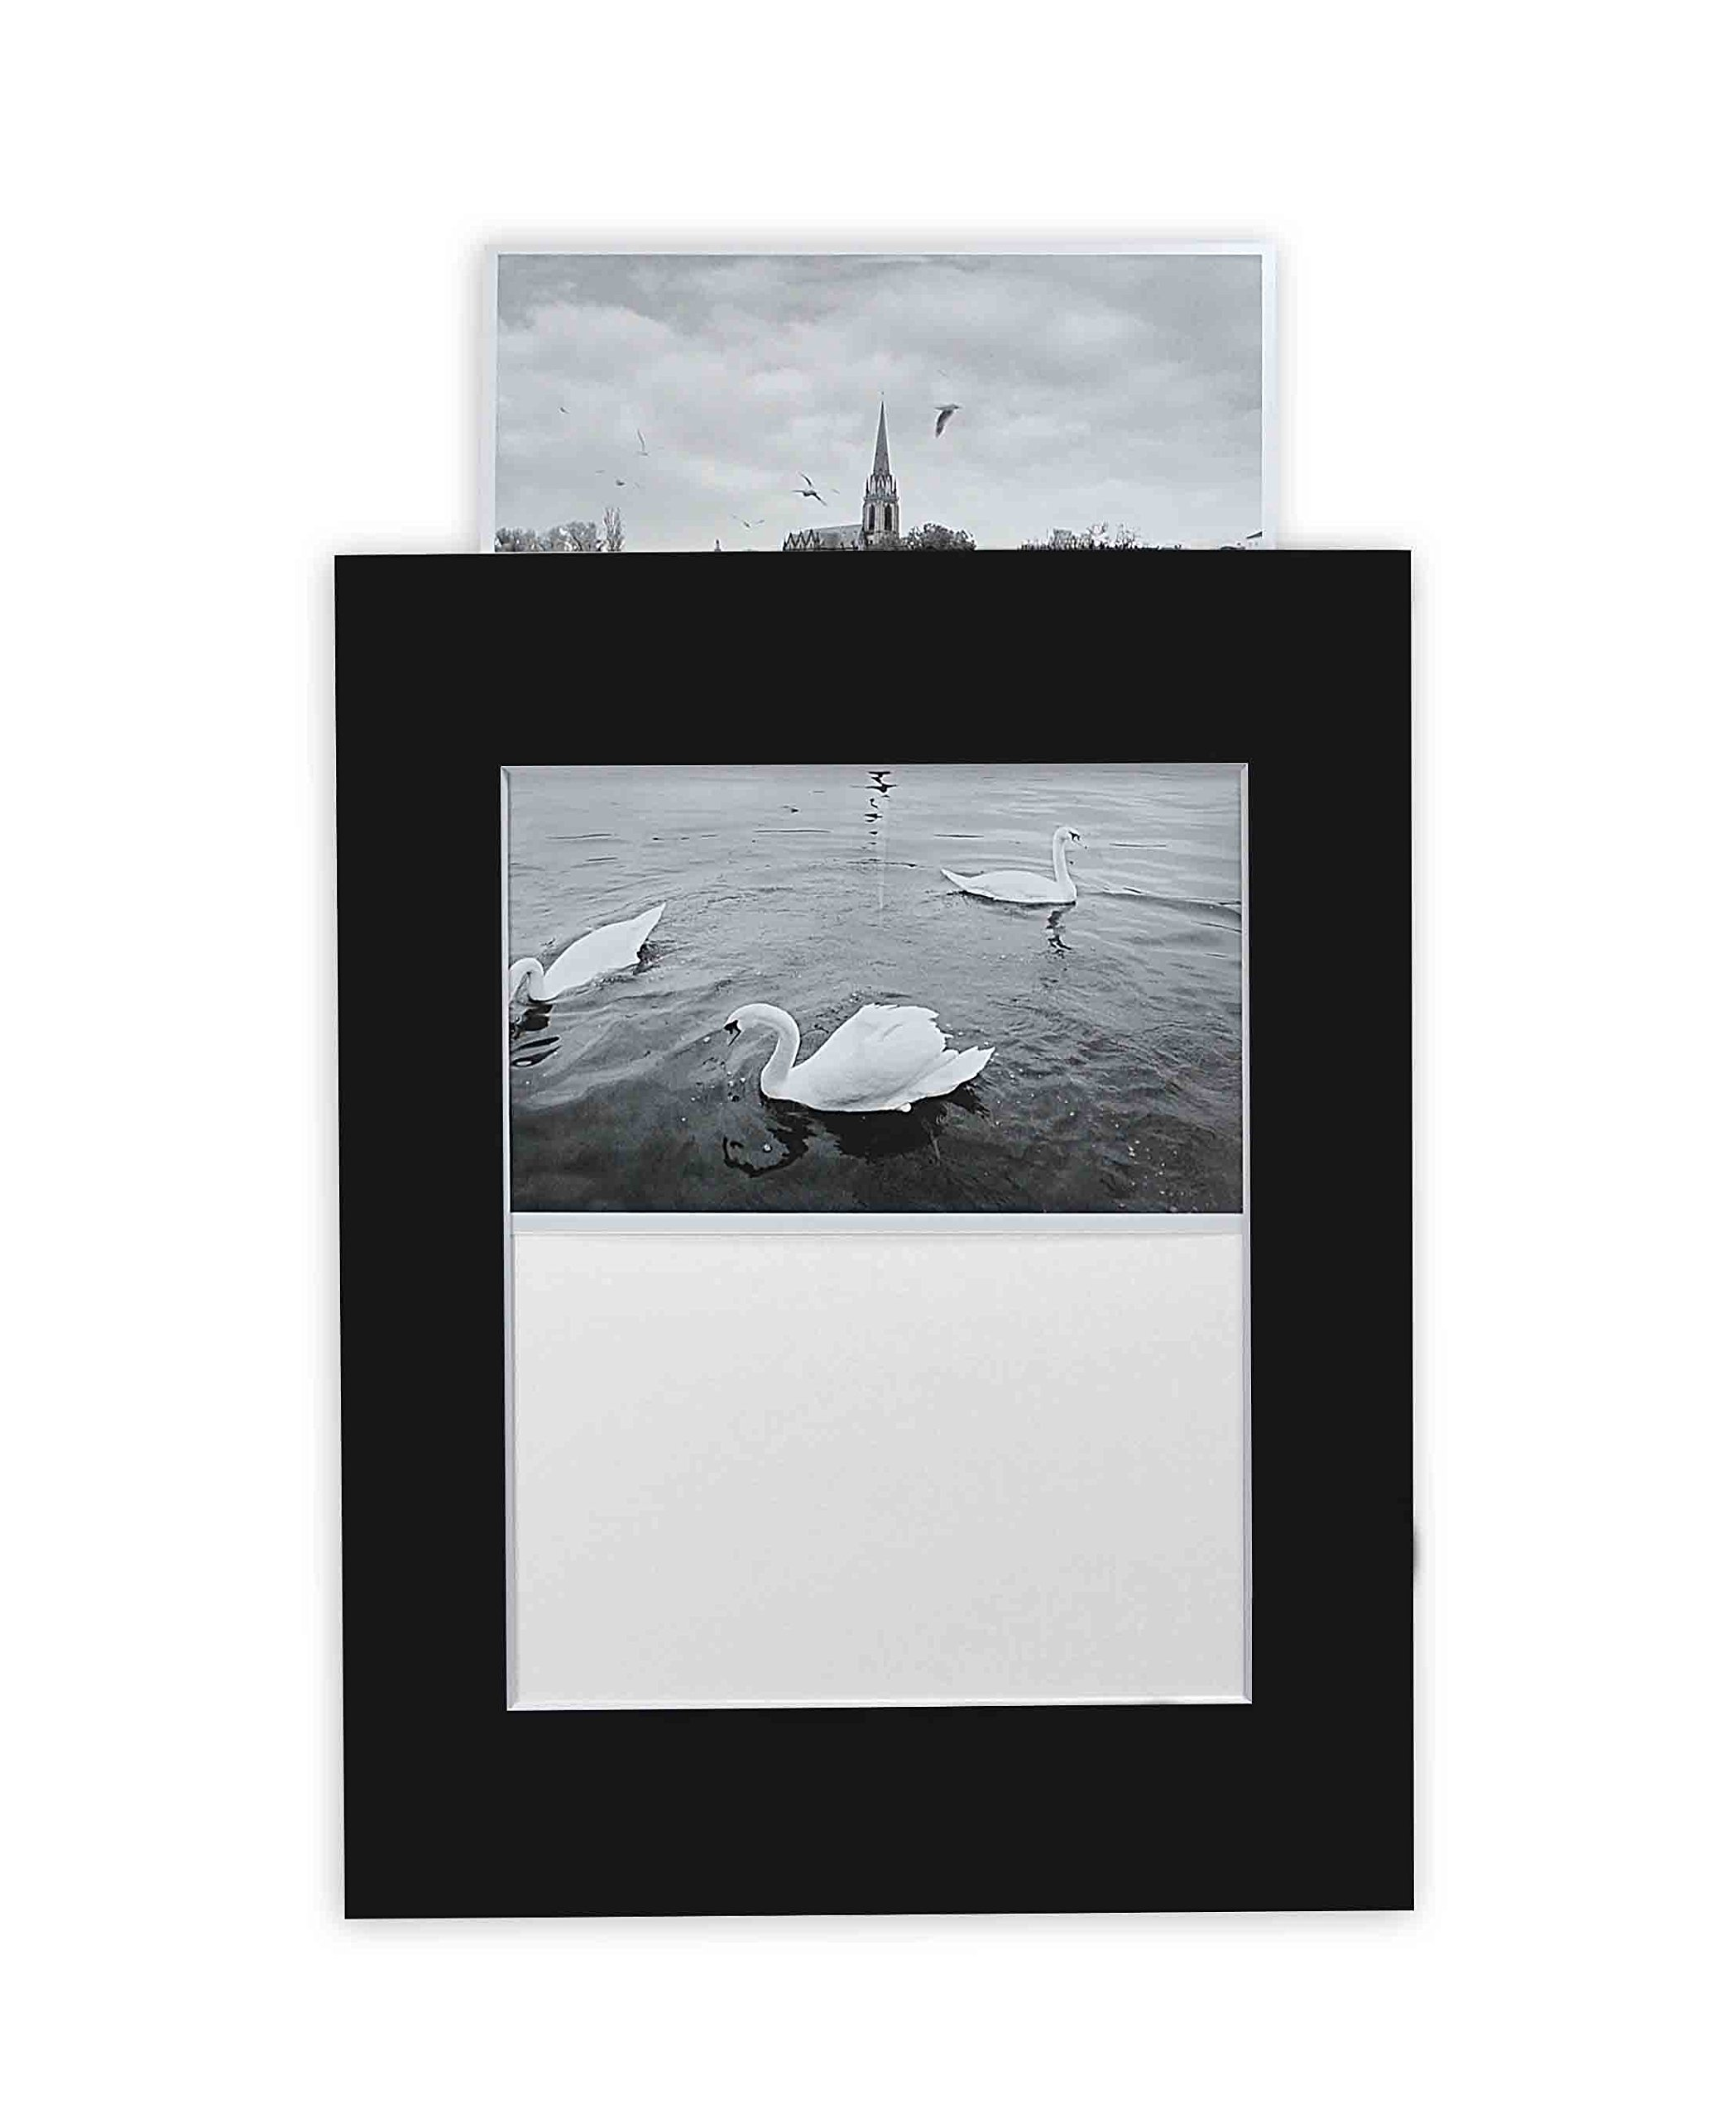 Golden State Art, Pack of 10 Black 11x14 Slip-in Pre-Adhesive Photo Mat for 8x10 Picture with Backing Board pre-Assembled, Includes 10 Clear Bags by Golden State Art